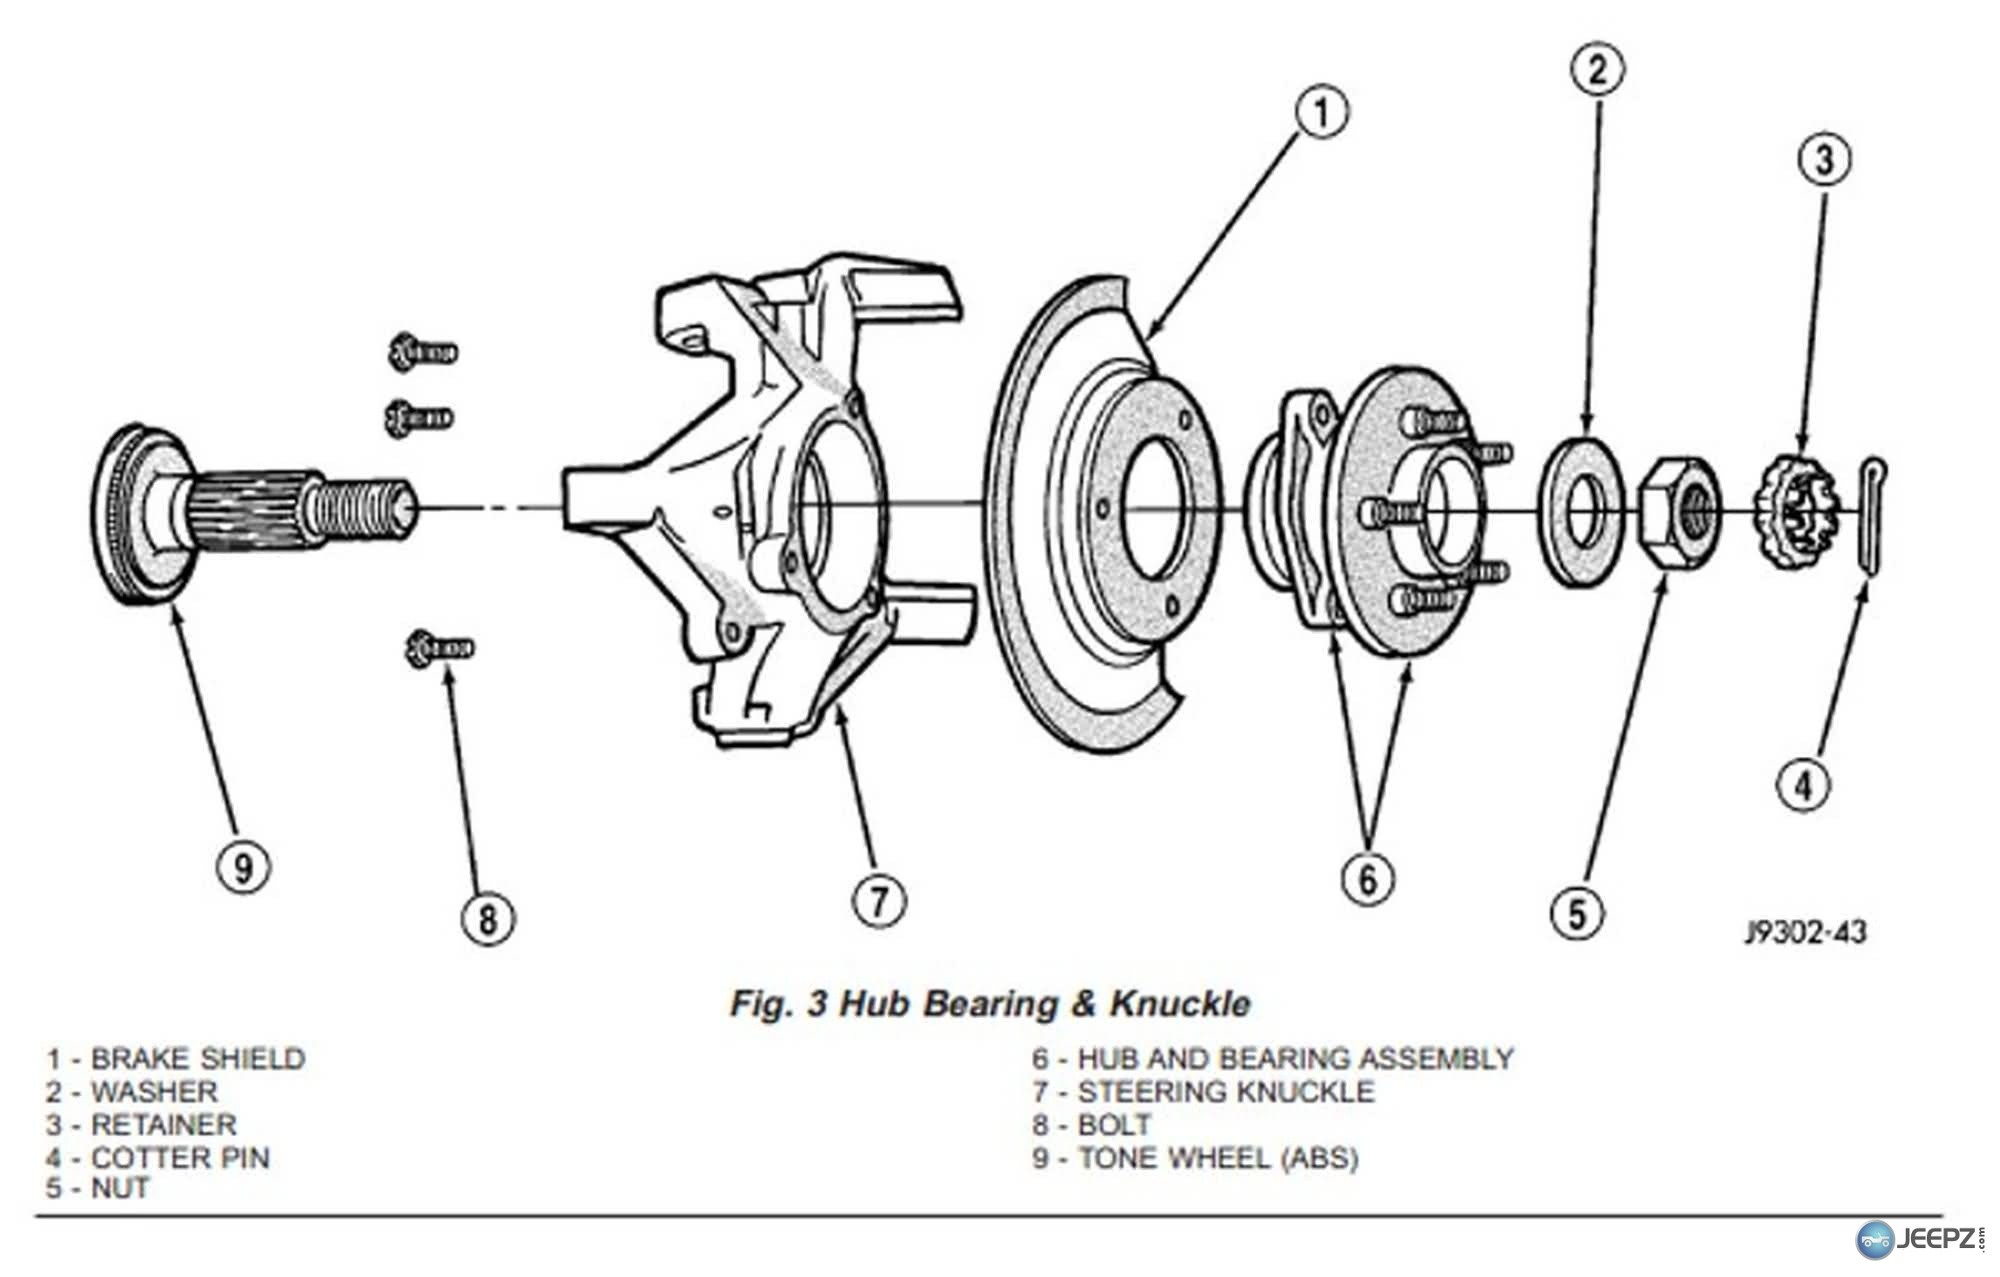 Wheel Bearing Assembly Diagram My Wiring Engine Full Size Of Car Starter Parts Hyundai Accent Within And